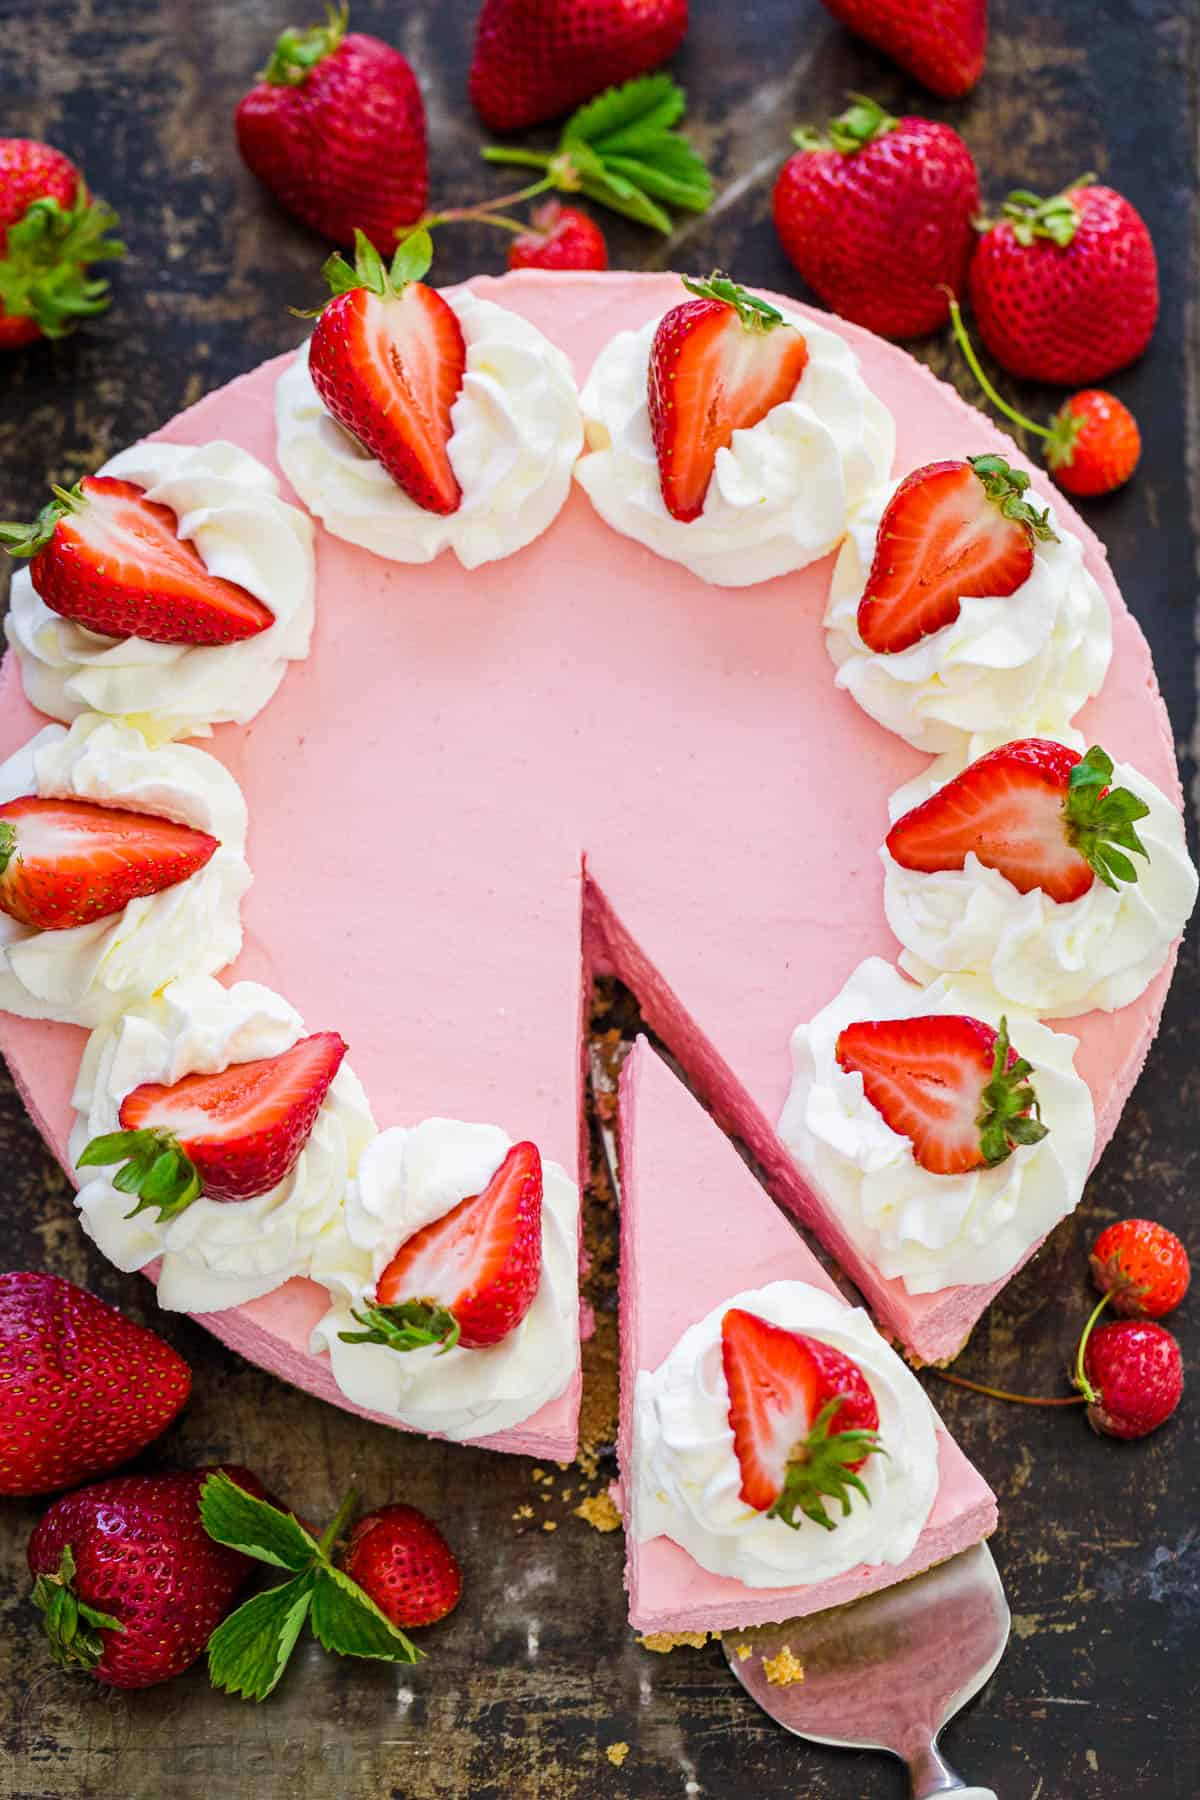 No Bake Strawberry Cheesecake Video Natashaskitchen Com